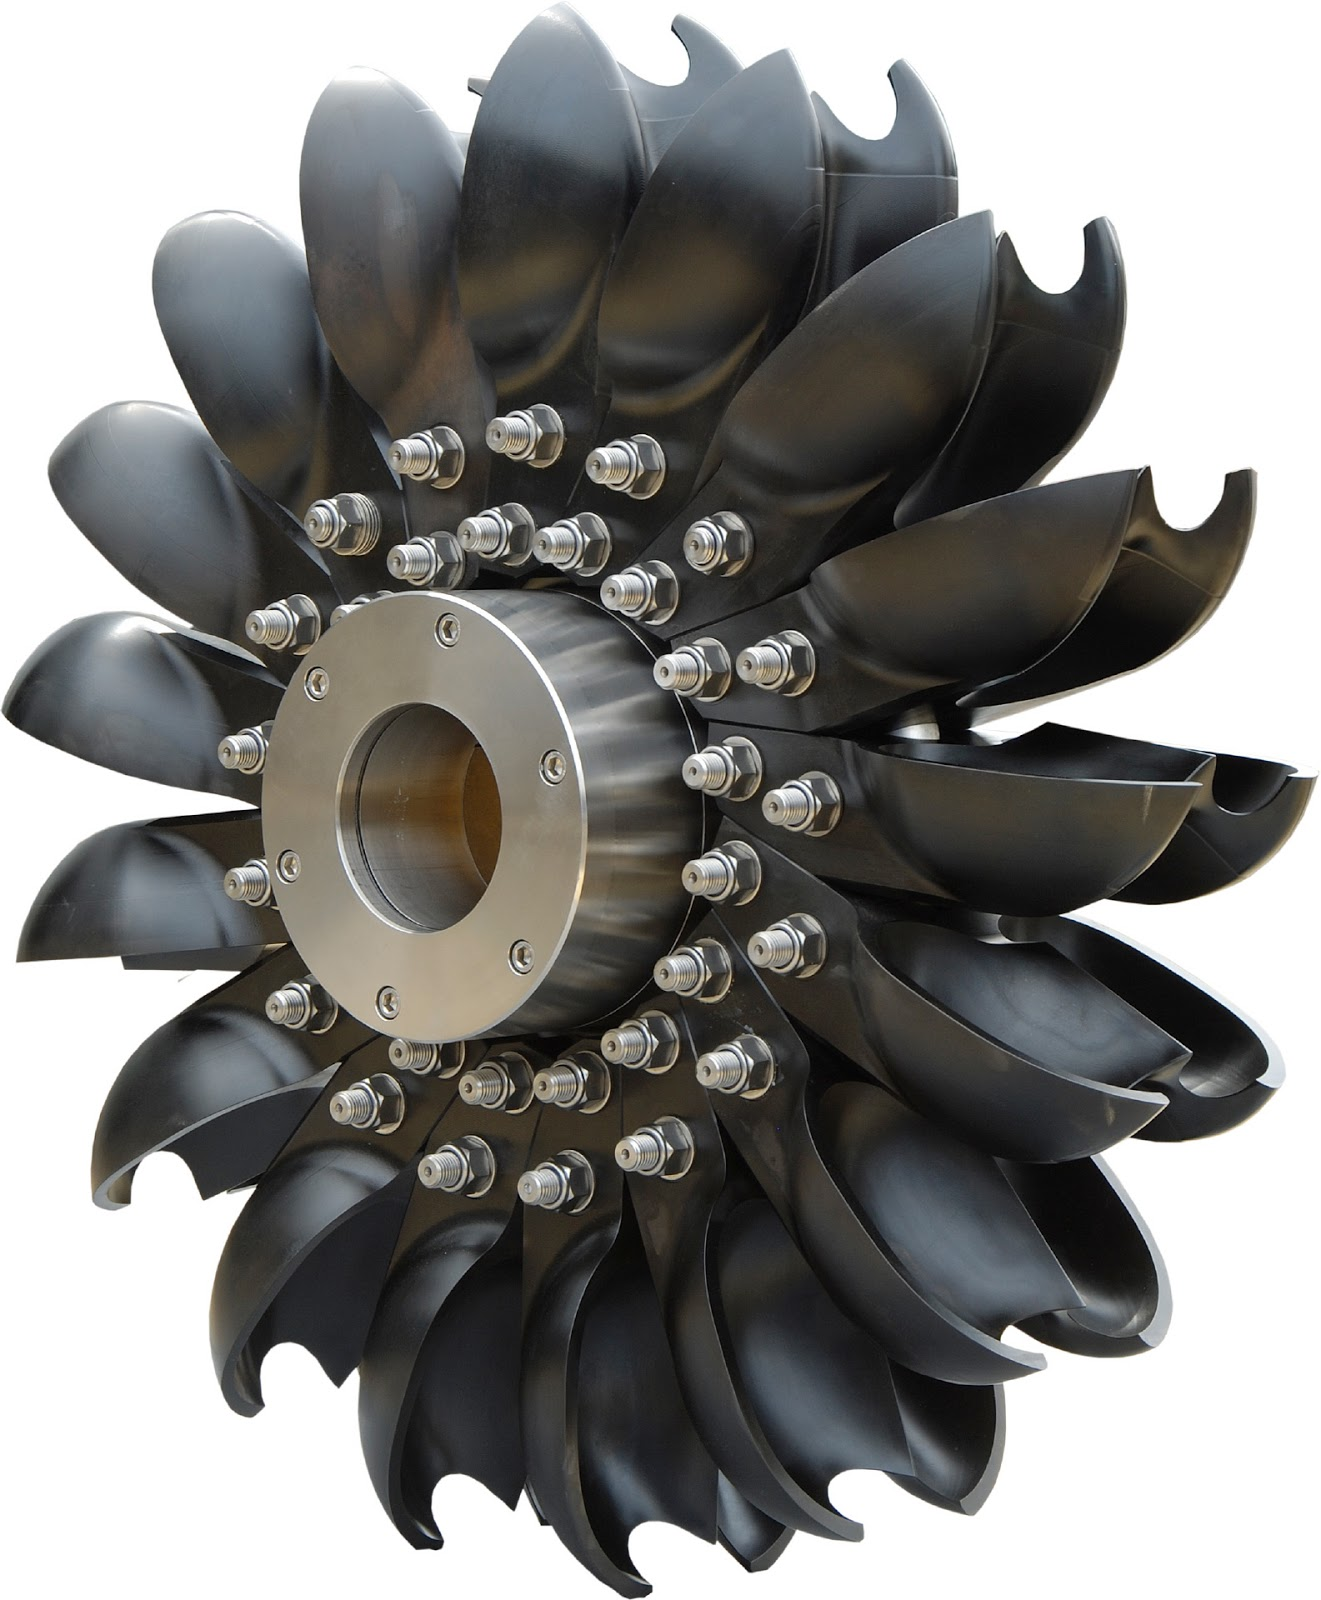 What Is Pelton Turbine